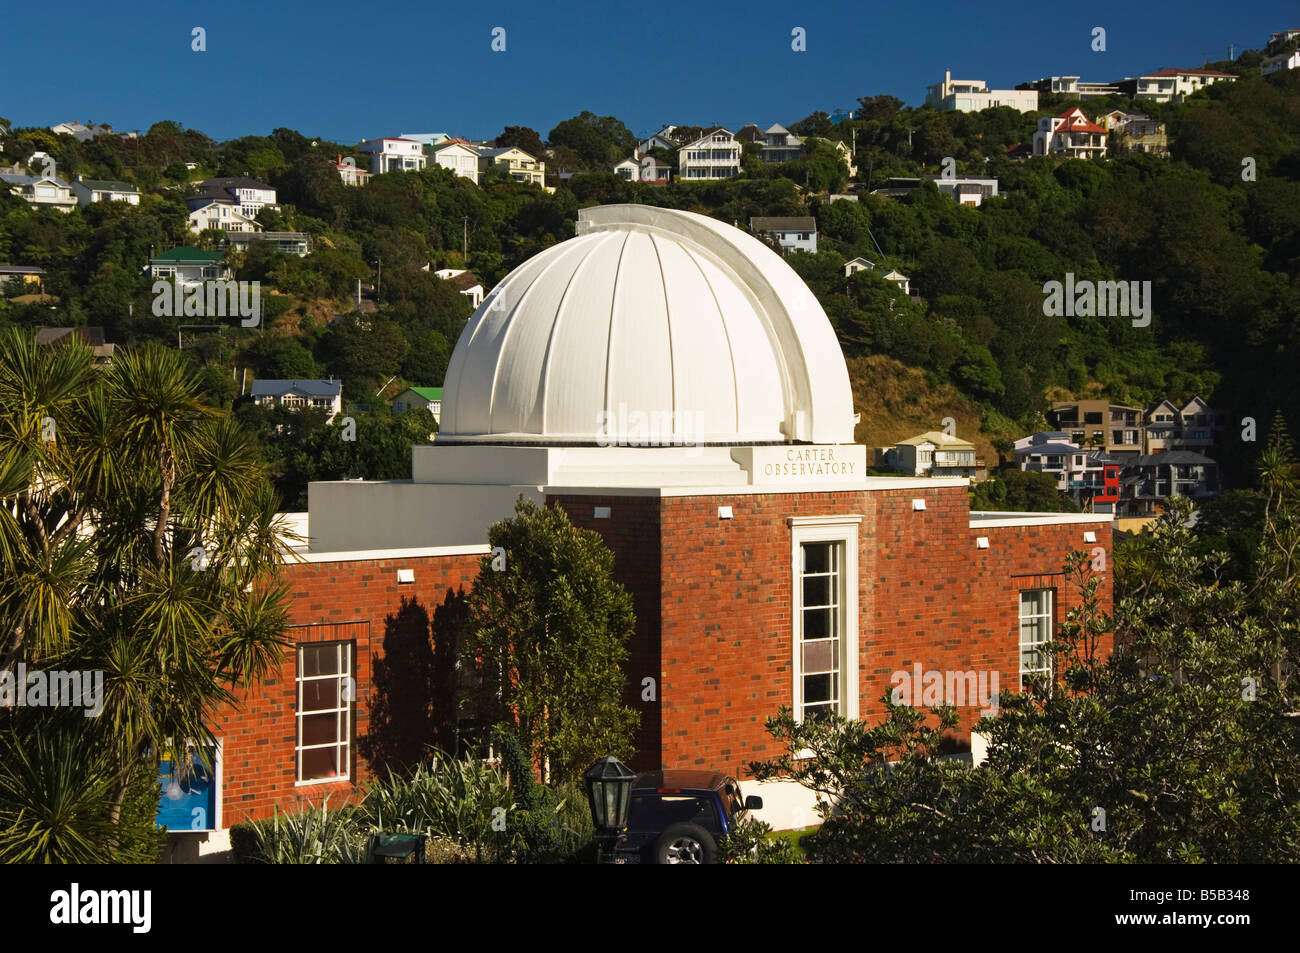 Carter Observatory and Planetarium on Mount Victoria in the Botanic Gardens, New Zealand, Wellington, New Zealand - Stock Image